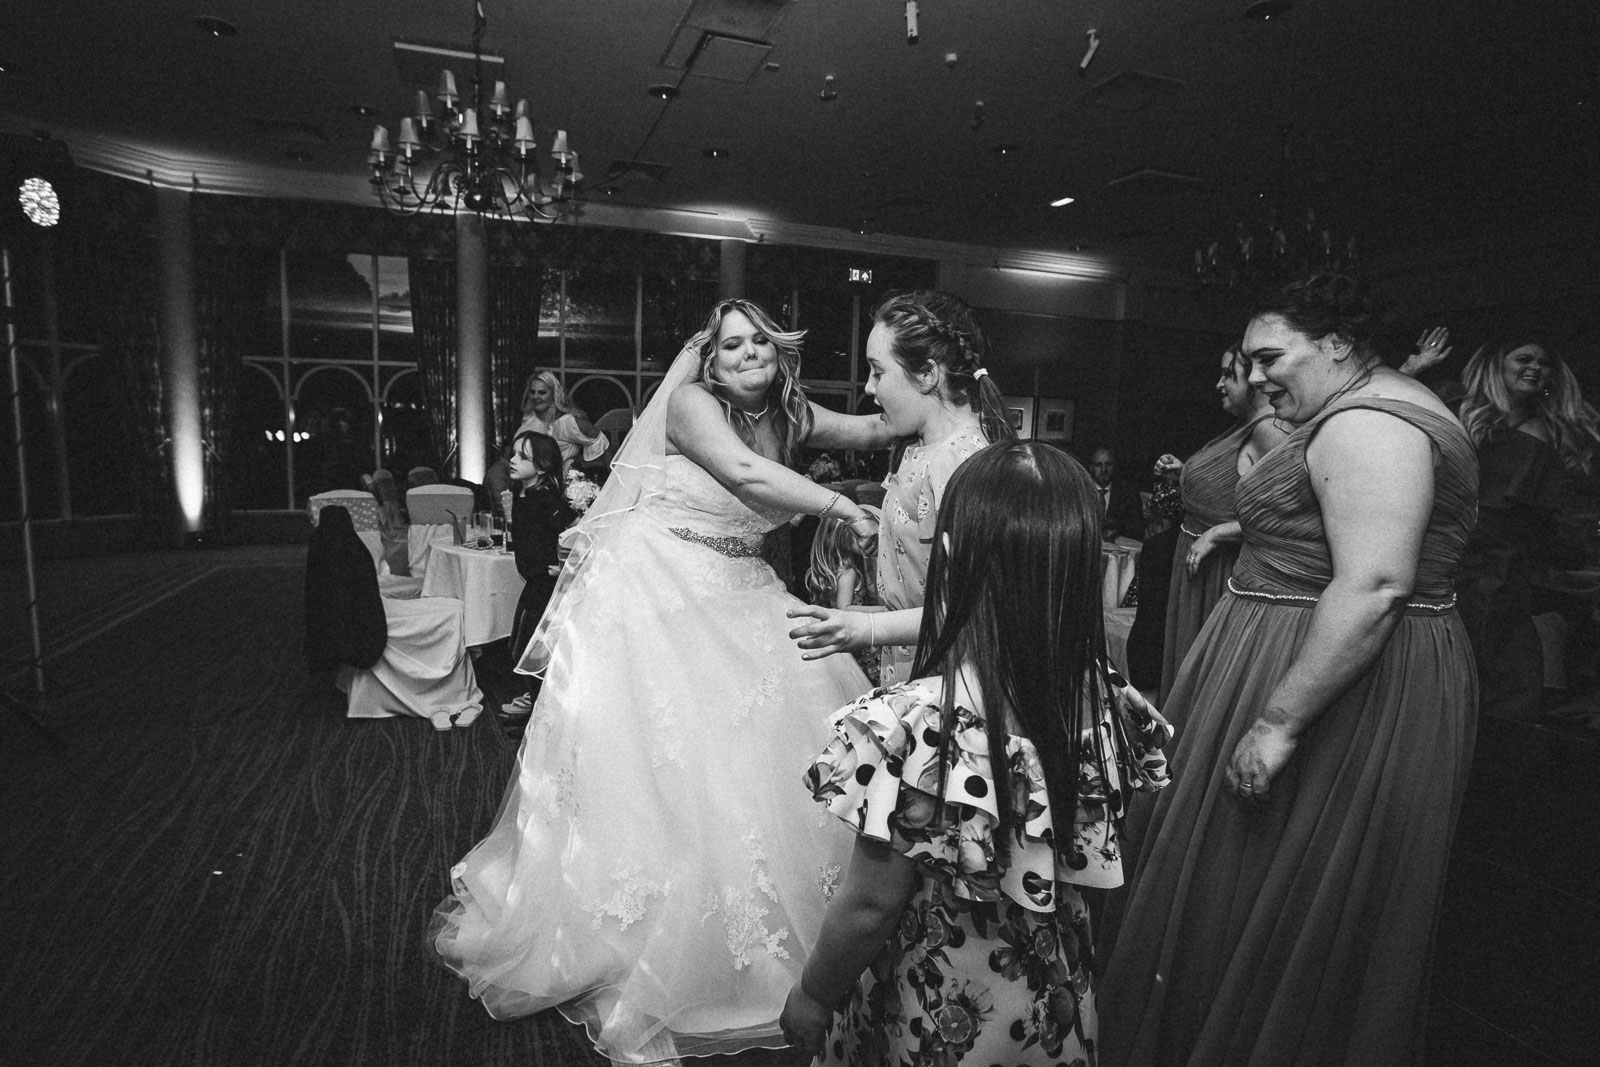 kilhey-court-hotel-wedding-110